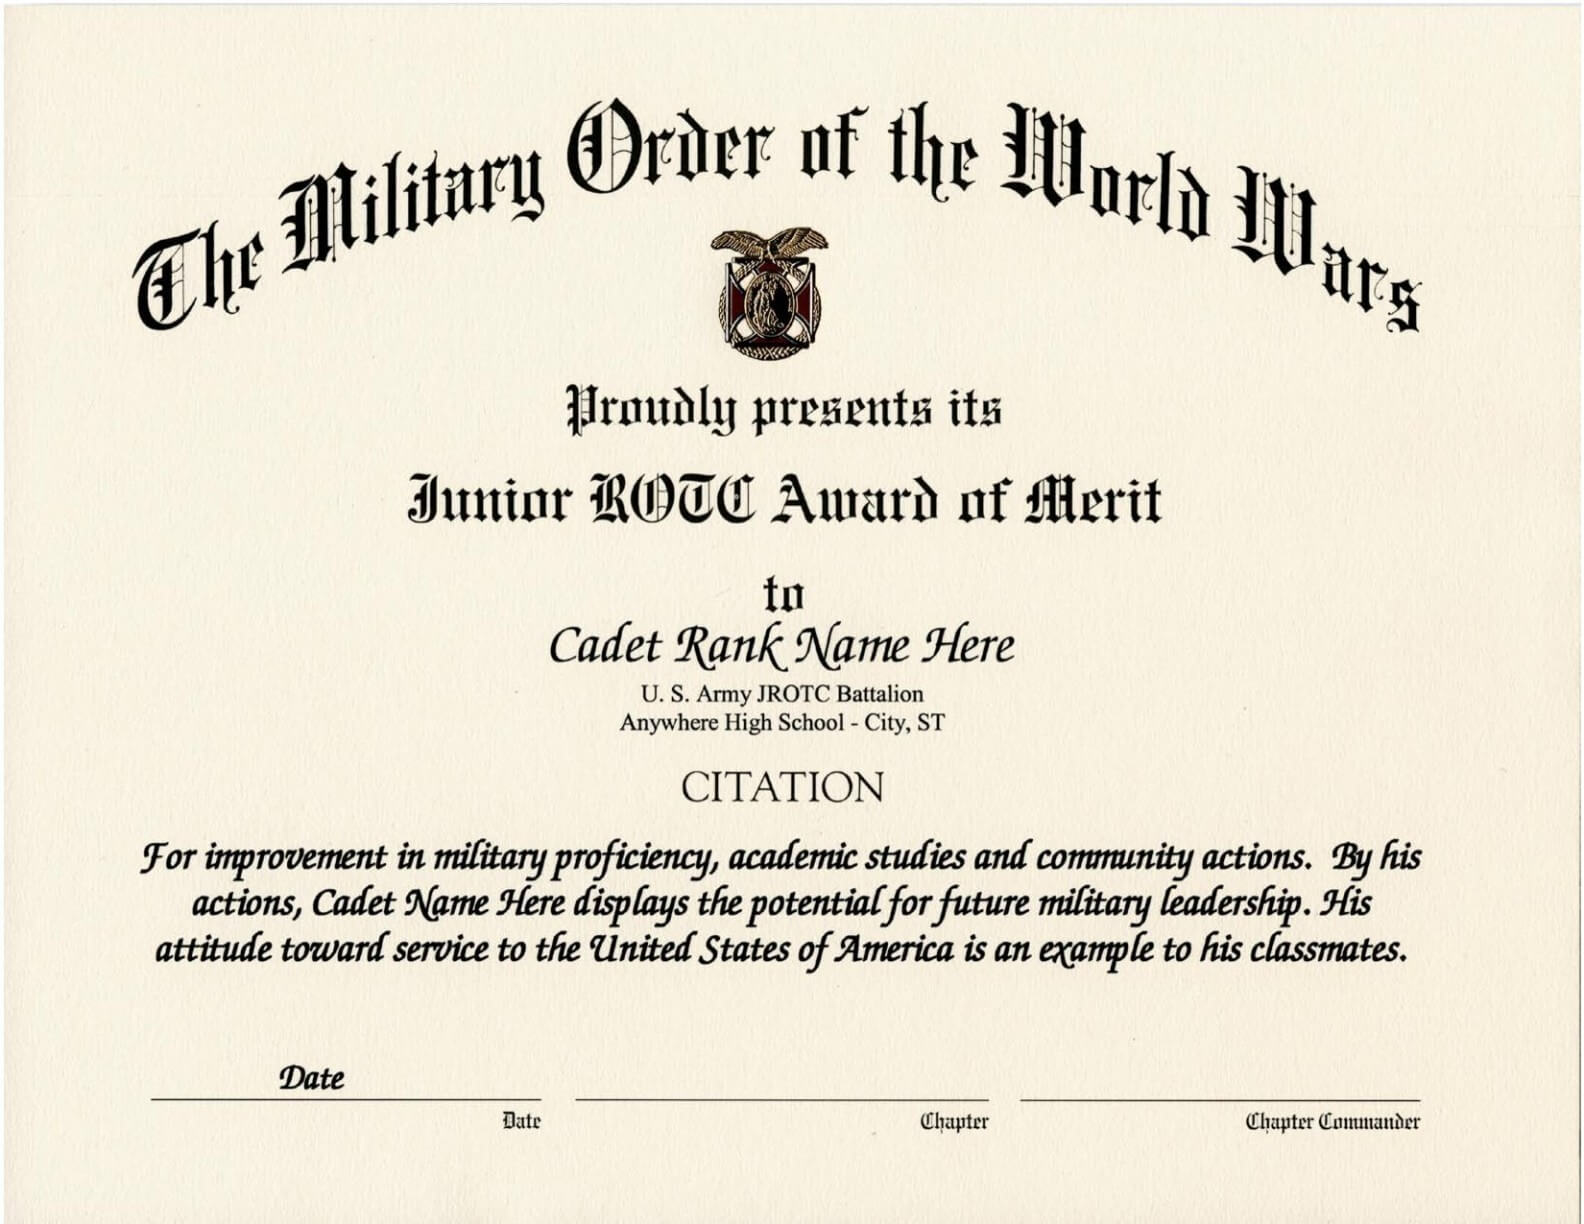 010 Army Certificate Of Achievement Template Microsoft Word Regarding Certificate Of Achievement Army Template